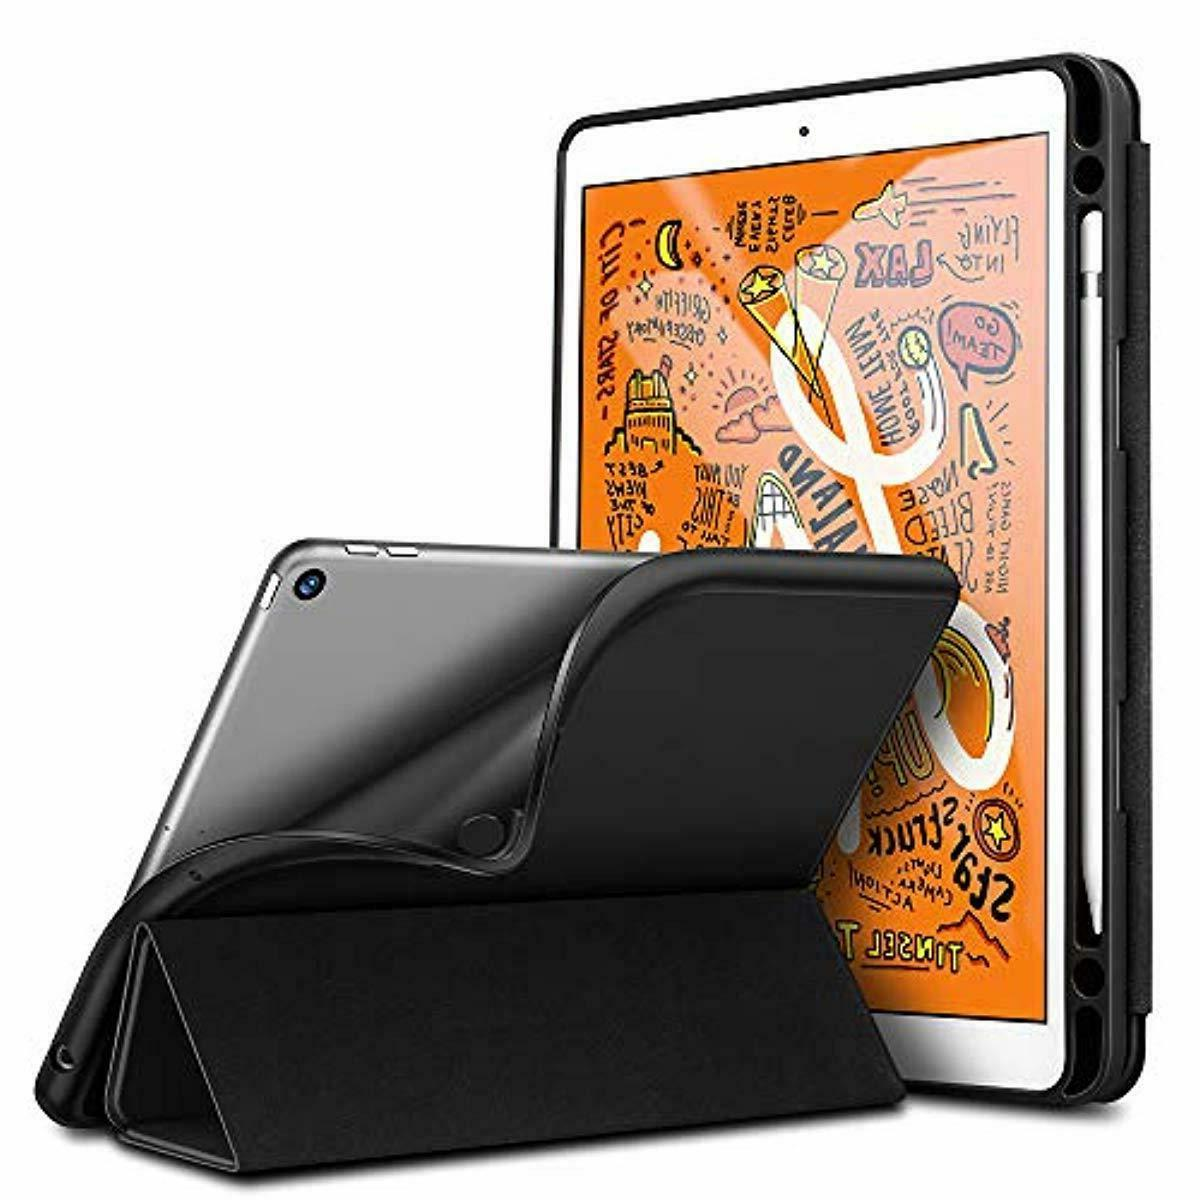 rebound pencil series case for ipad mini